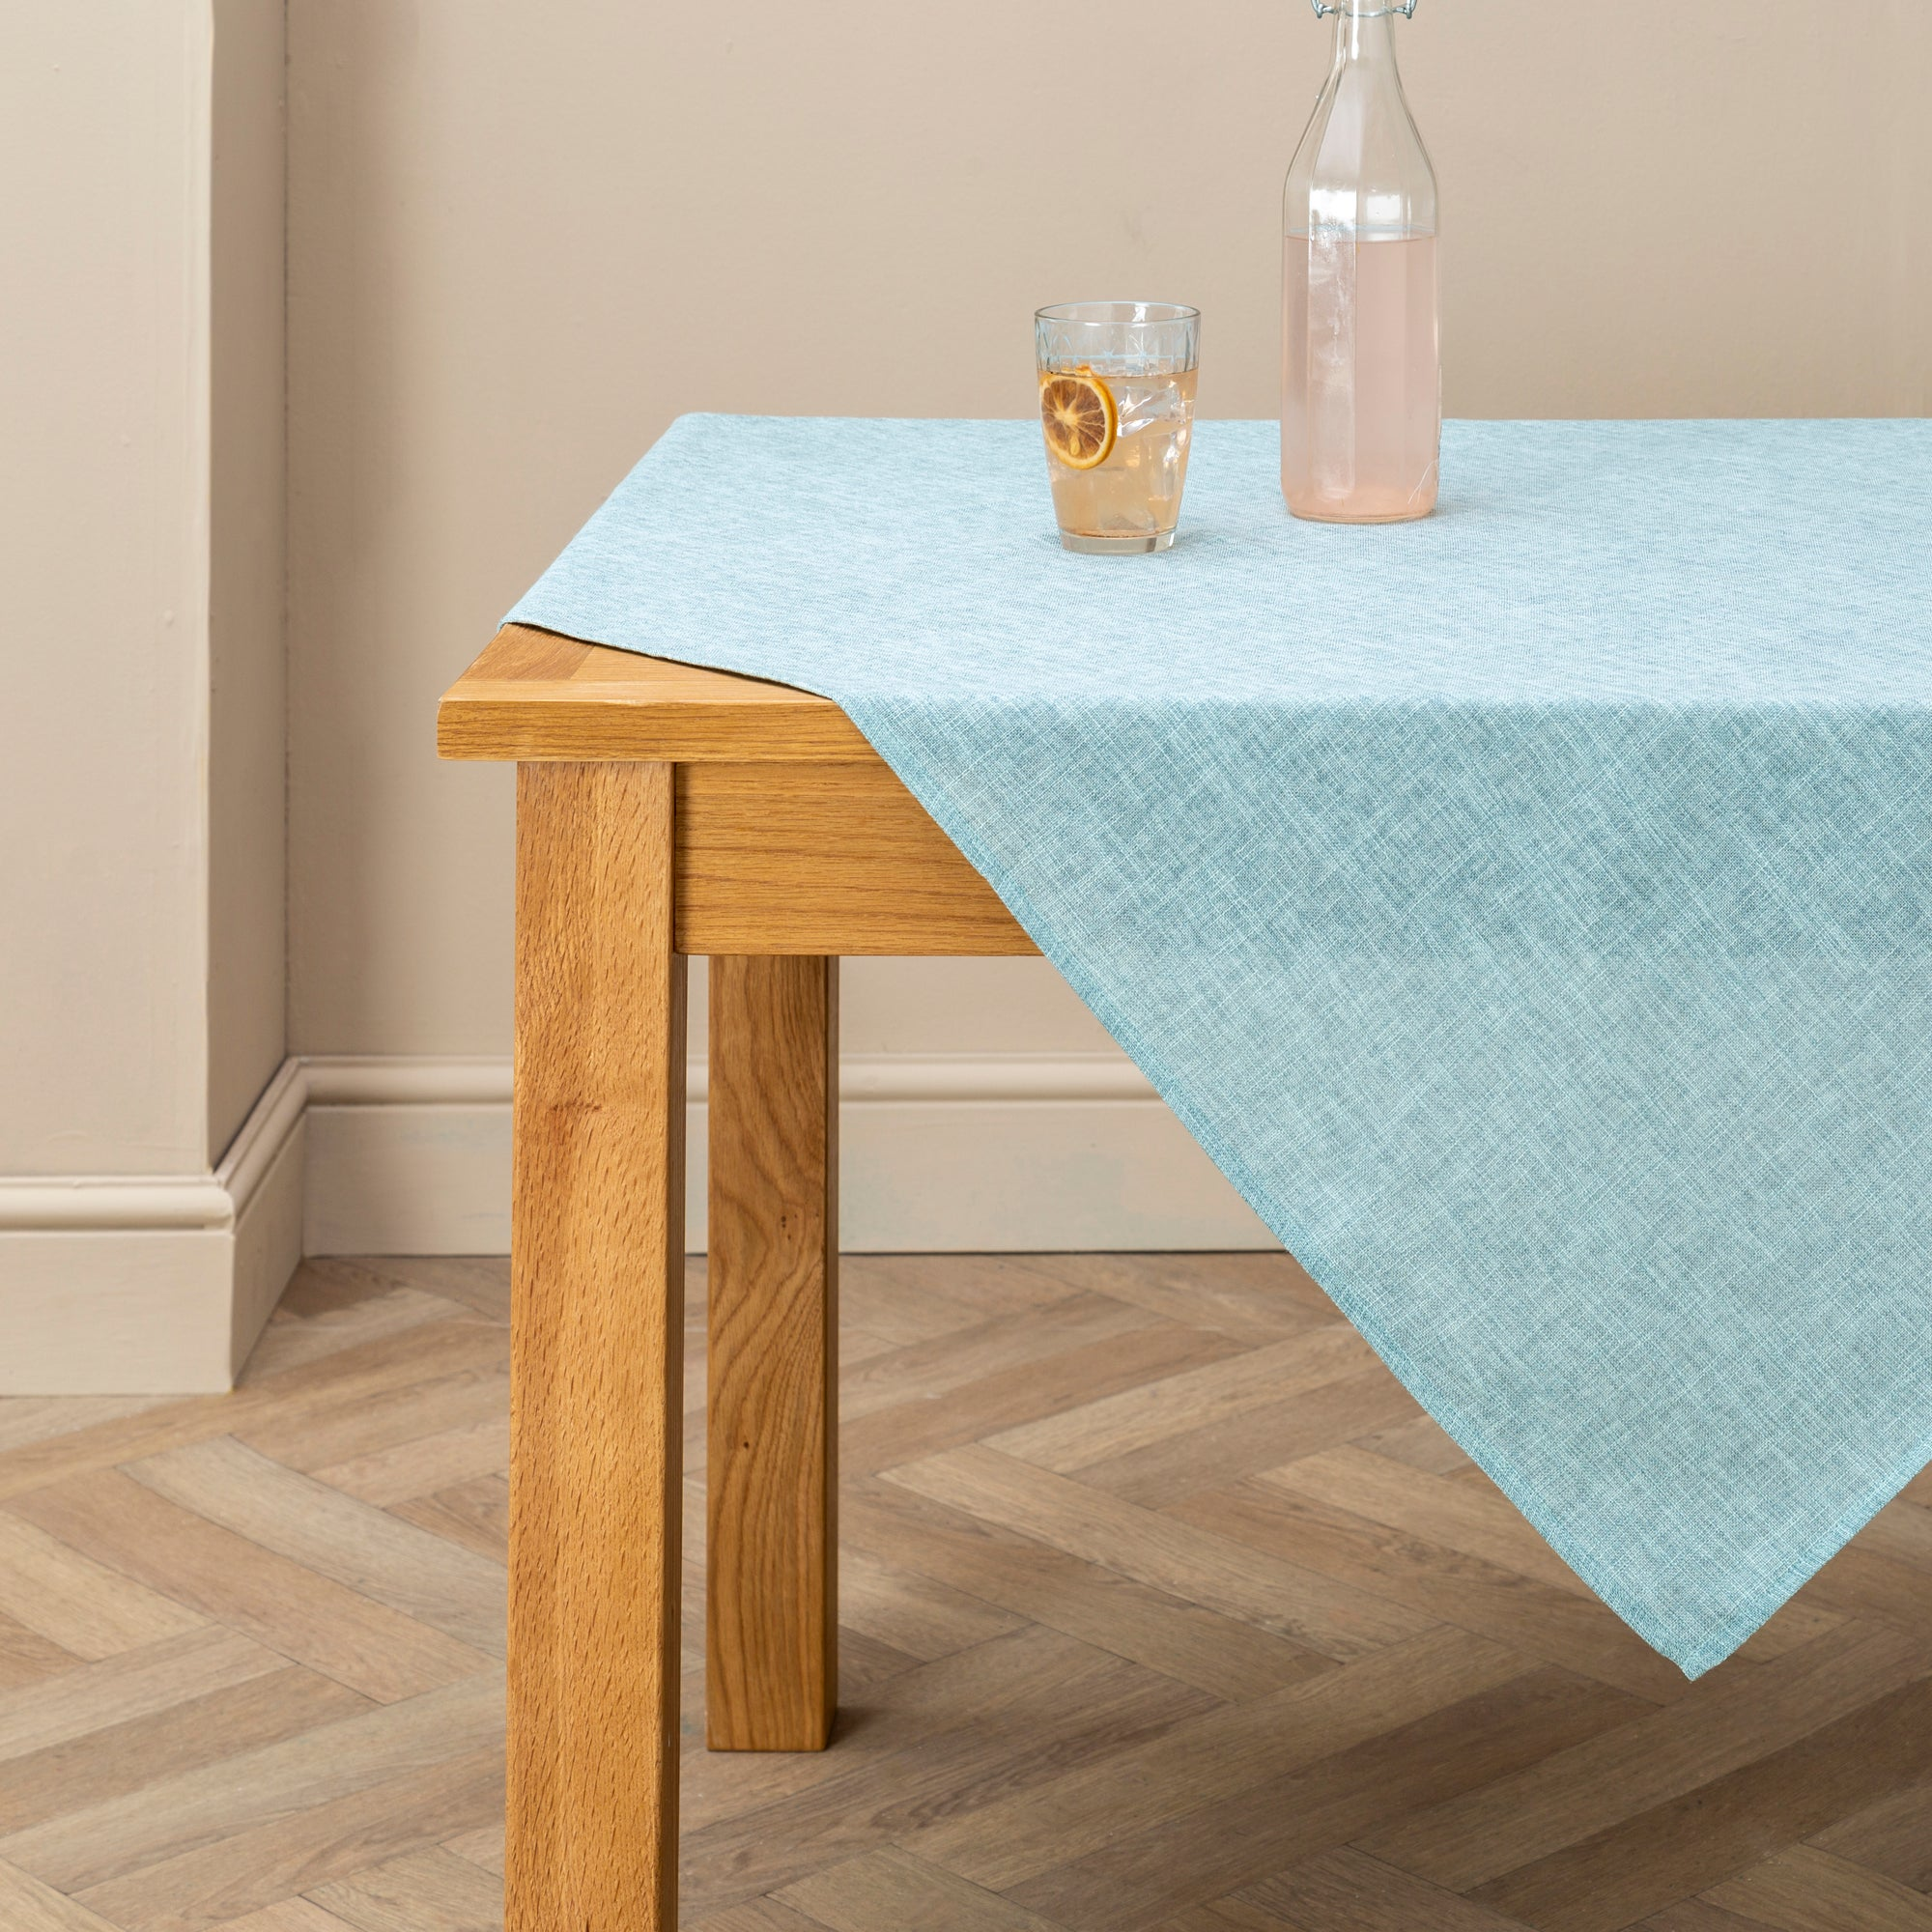 Image of Vermont Duck Egg Tablecloth Blue